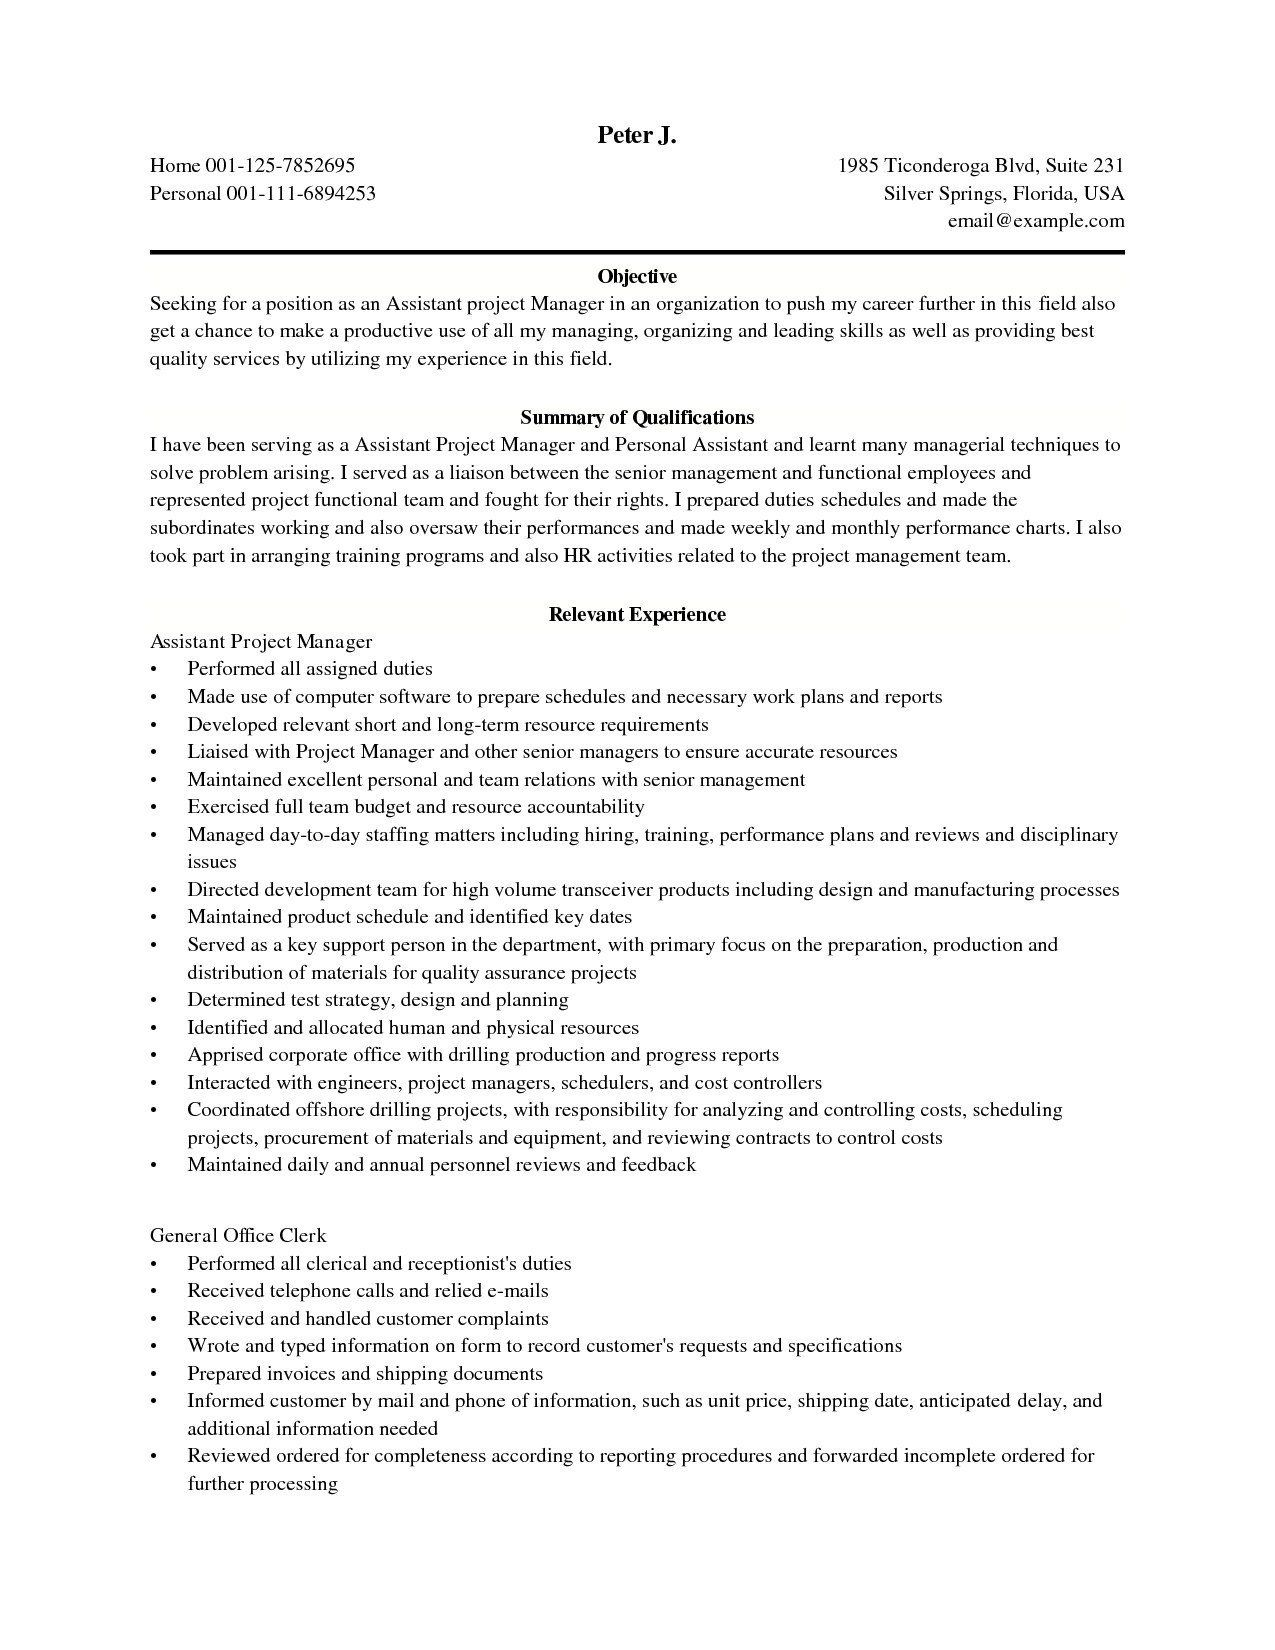 Assistant Manager Resume Sample Elegant How To Quote In A Paper New Luxury Grapher Resume Sample Project Manager Resume Job Resume Examples Manager Resume